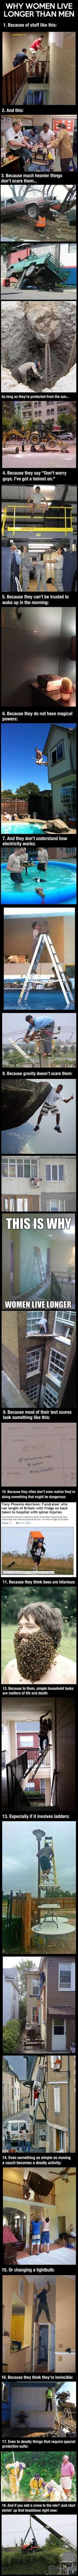 Funny Memes About This is Why Women Live Longer Than Men